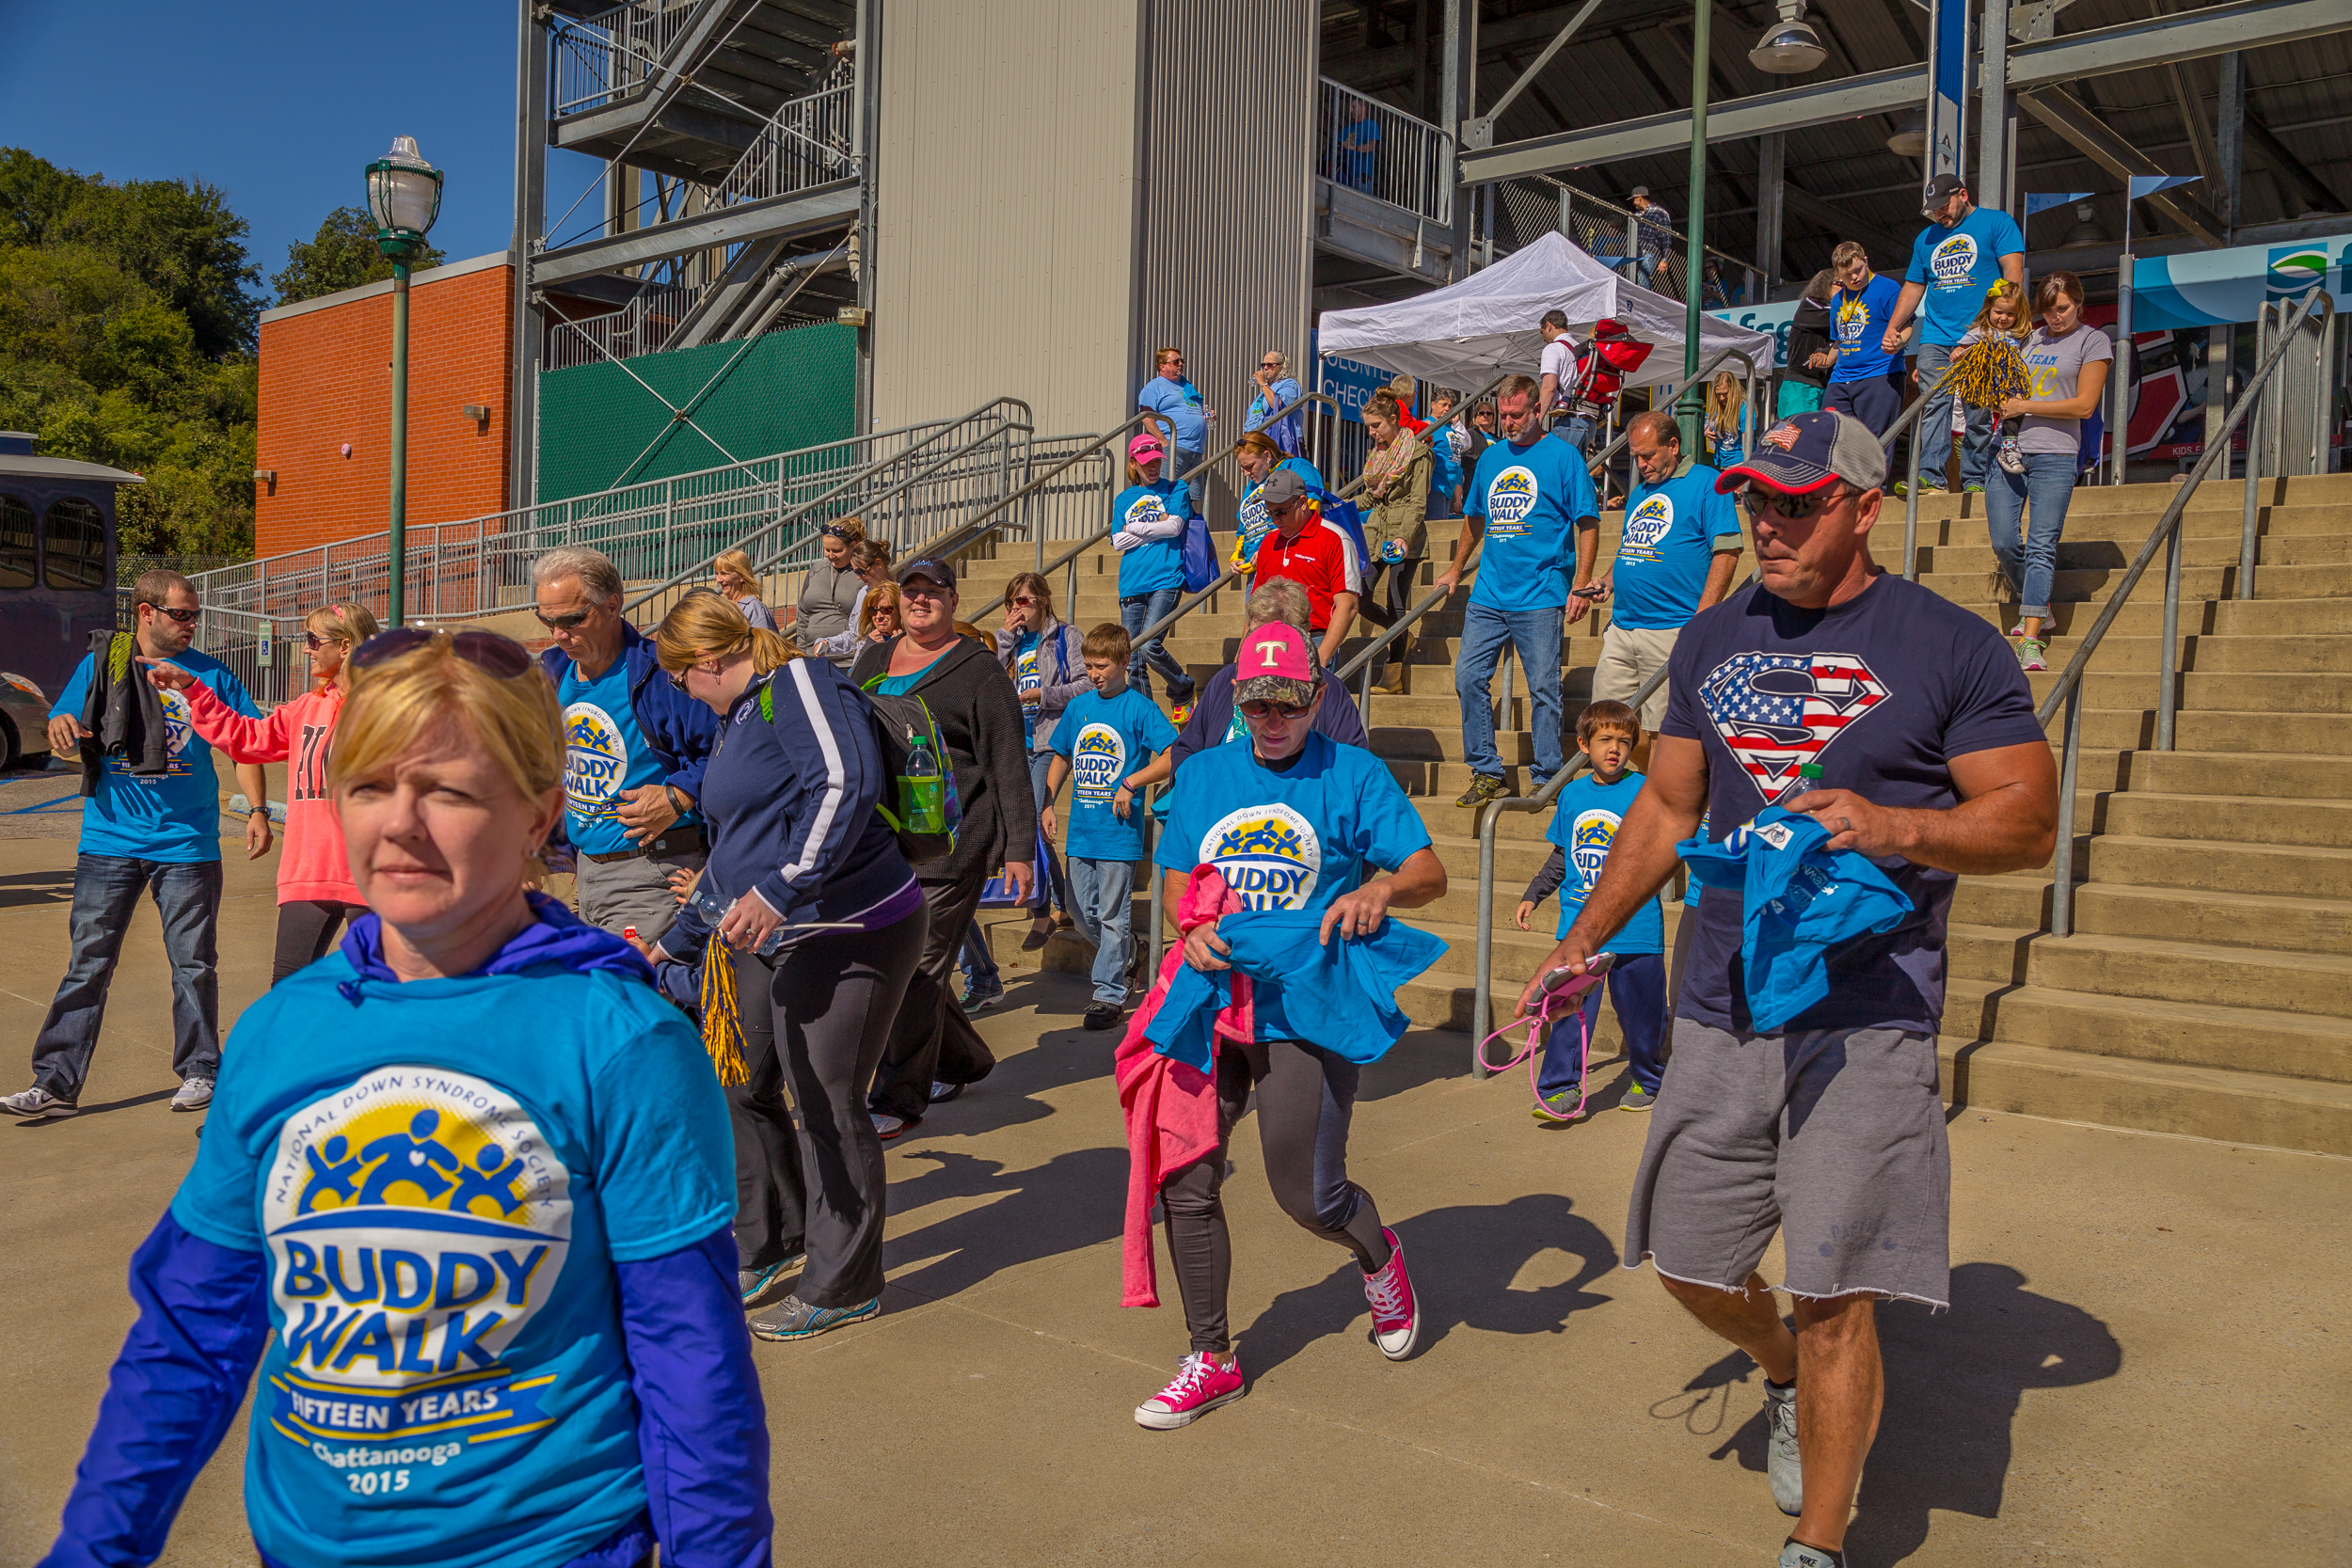 2015 CDSS Buddy Walk-248.jpg